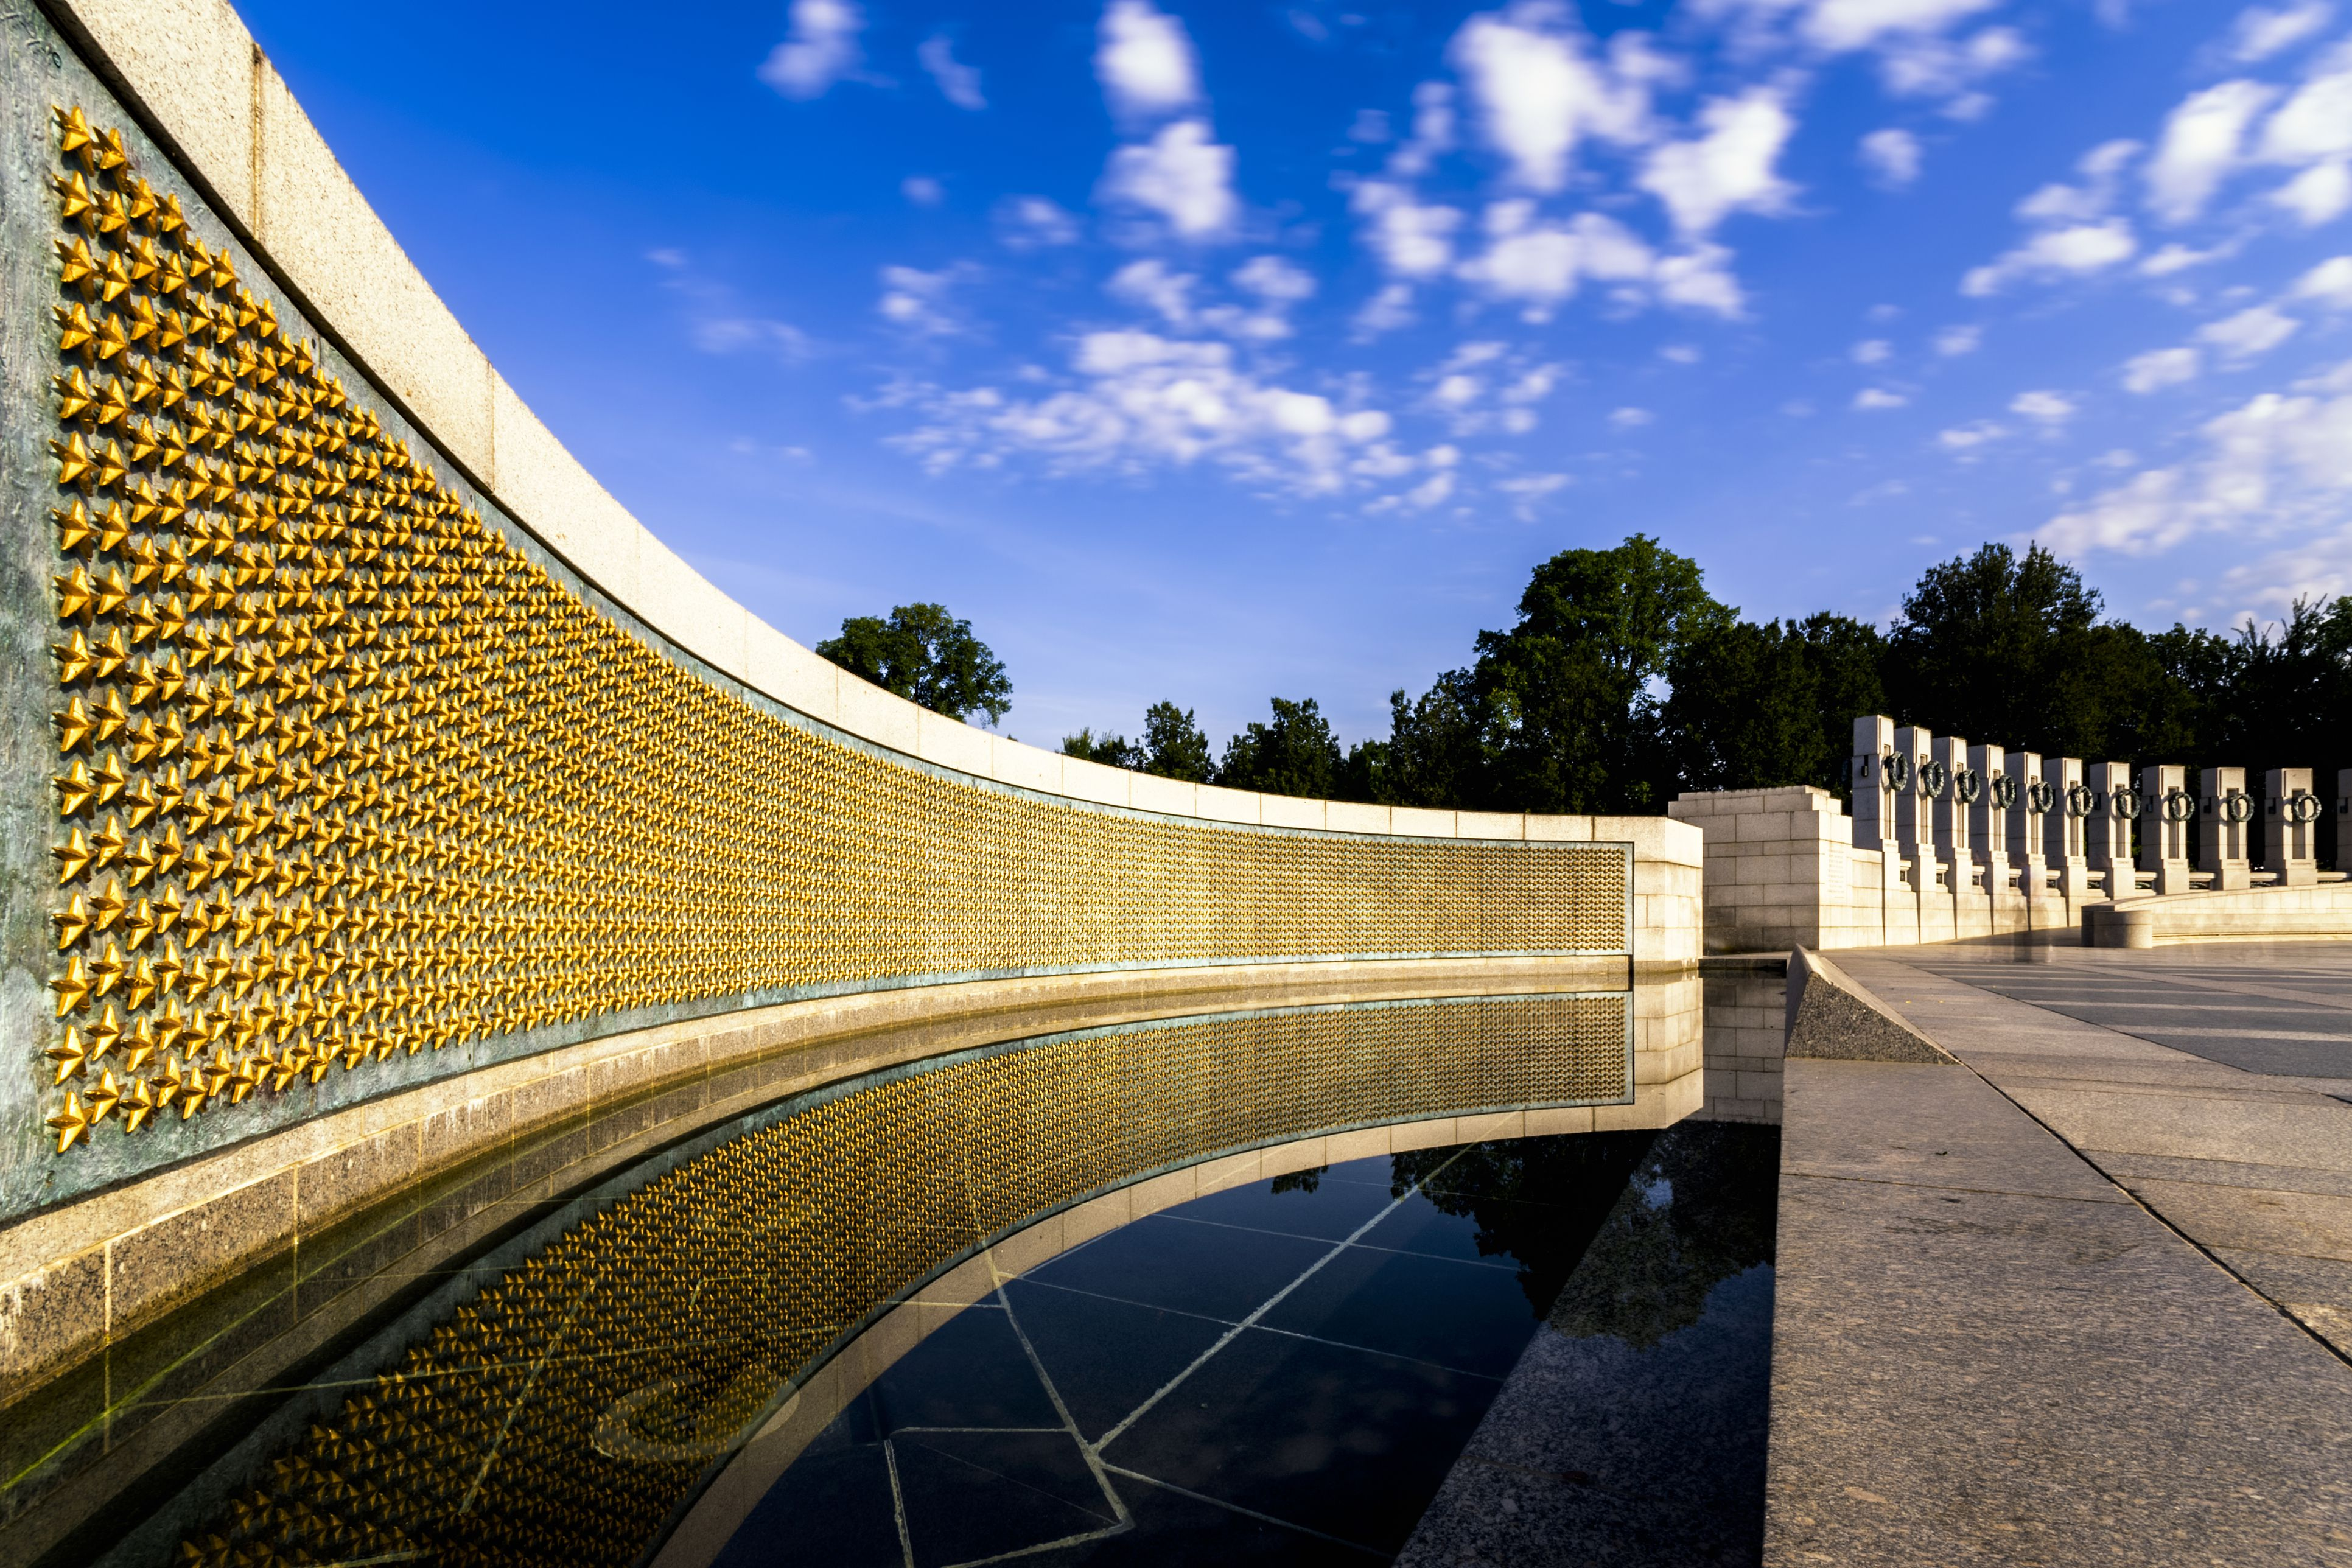 National mall in washington d.c.: what to see and do